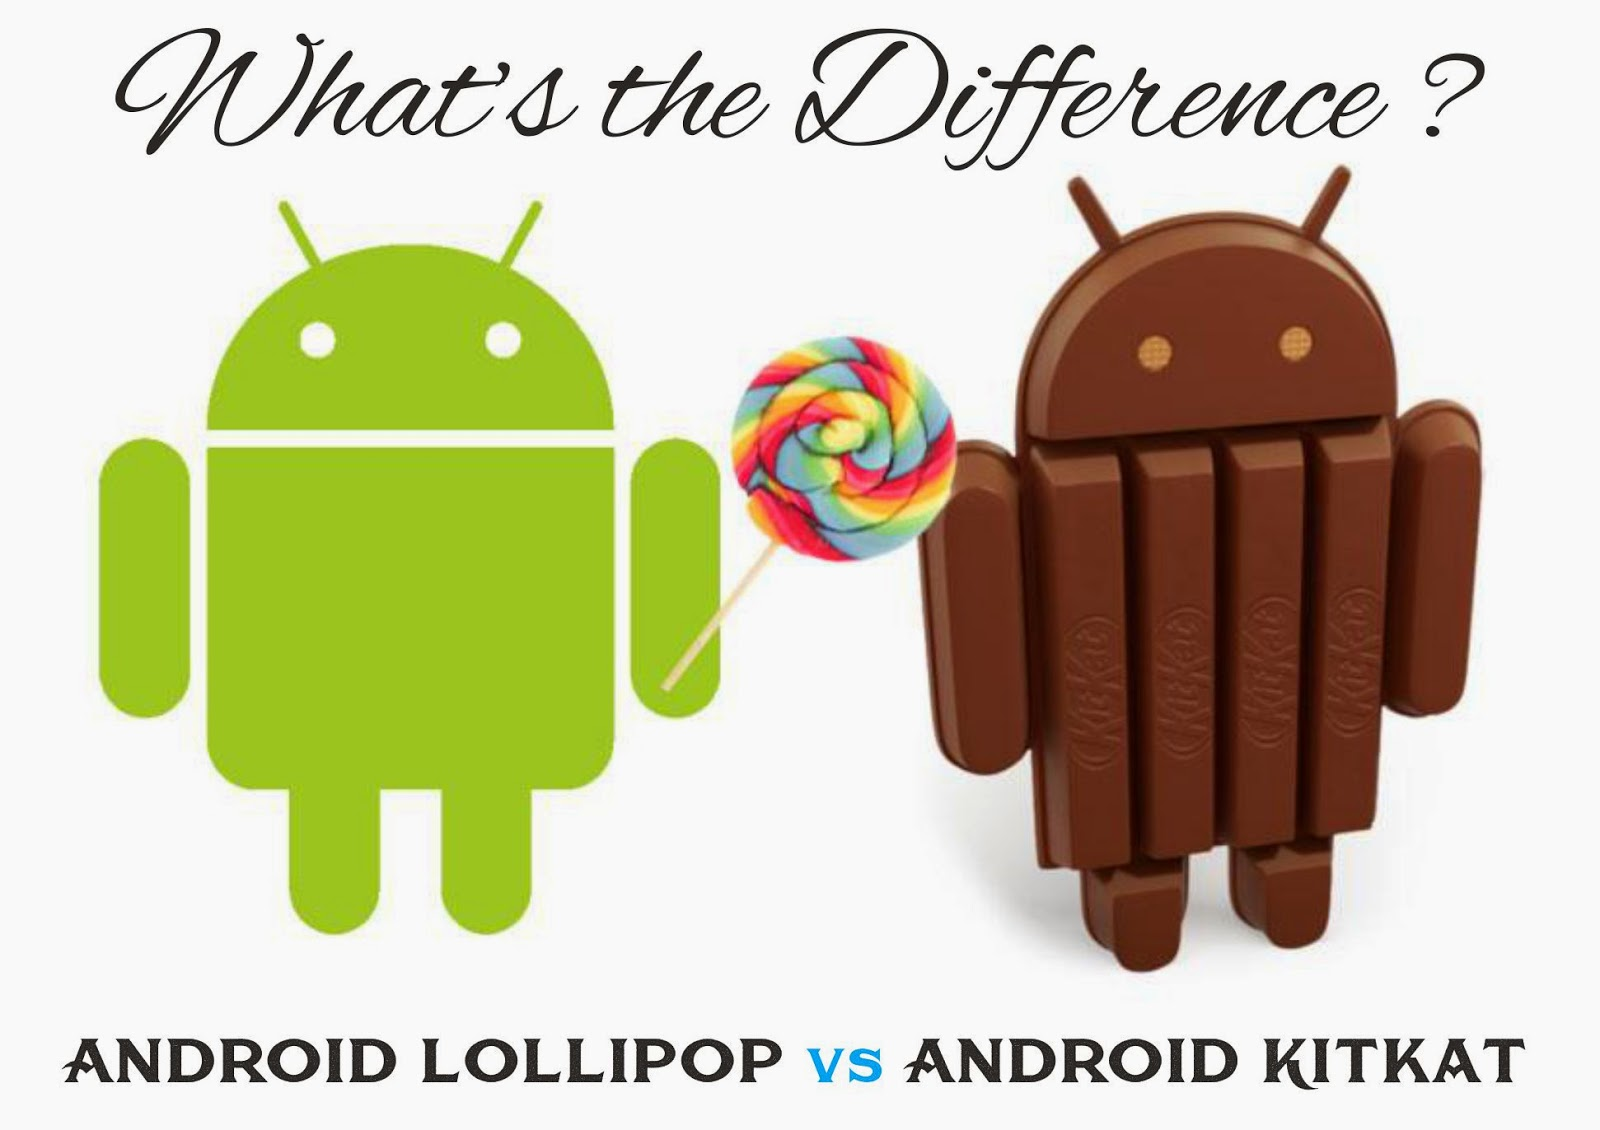 Android Lollipop Vs Android Kitkat: What's the Difference?